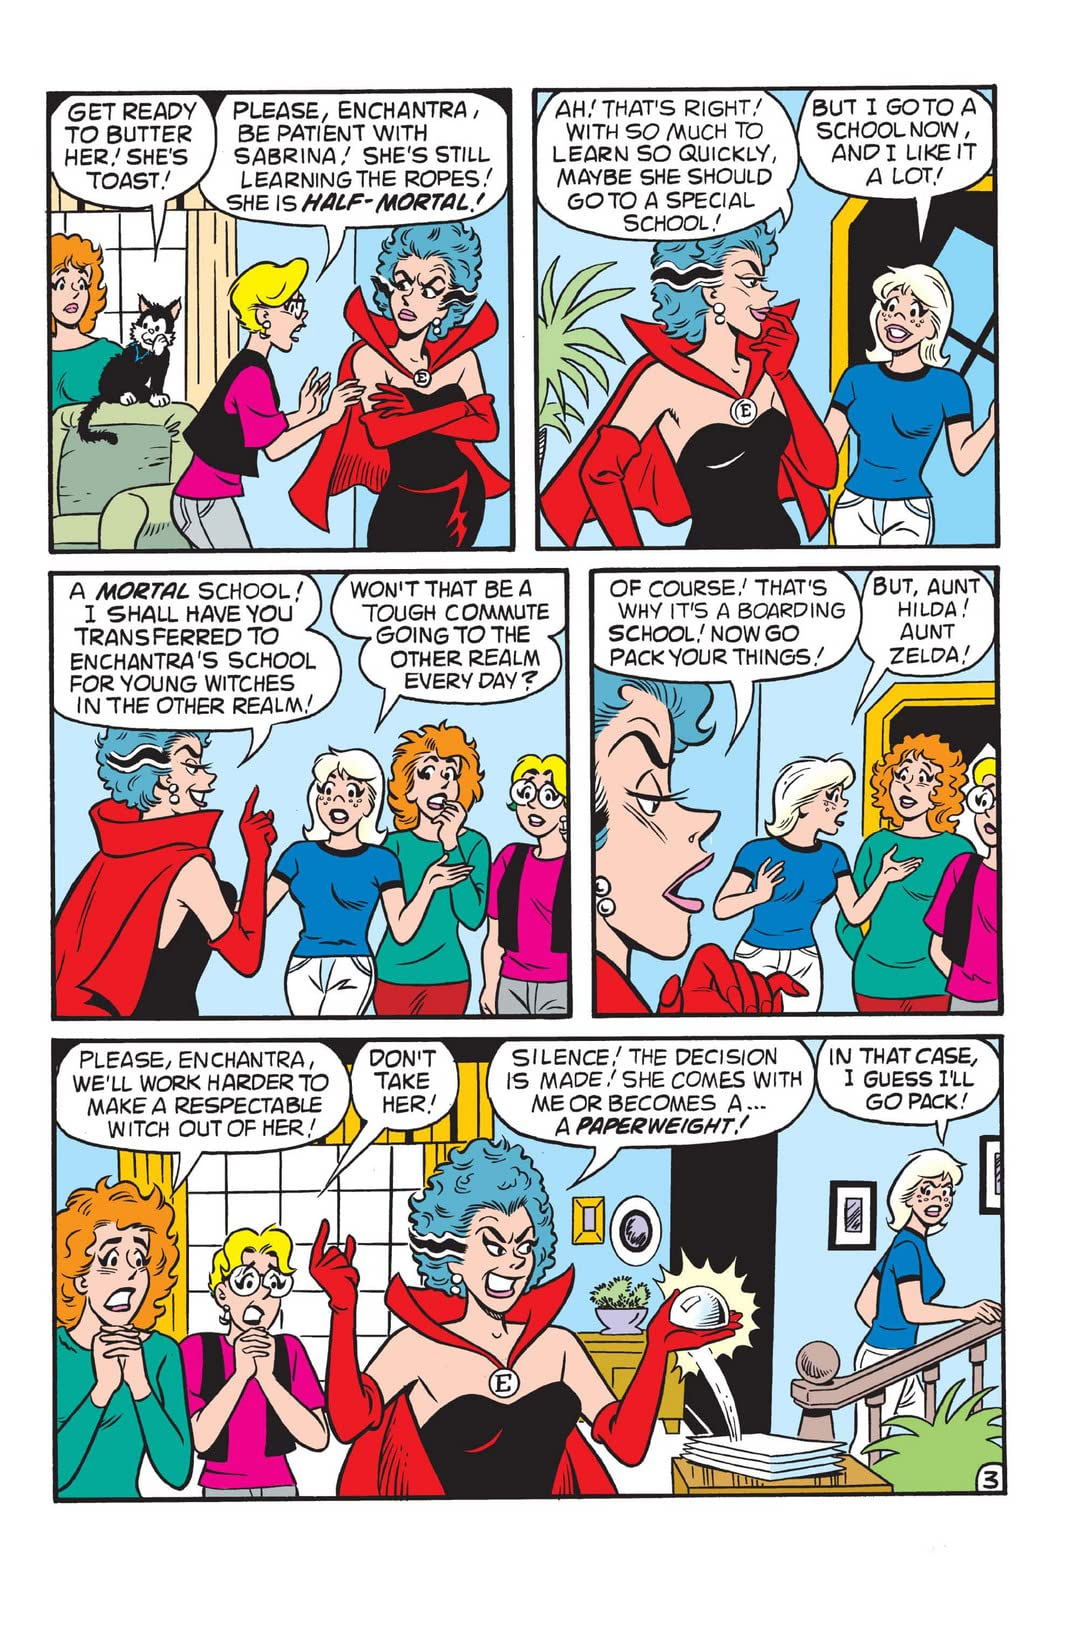 Sabrina the Teenage Witch #20